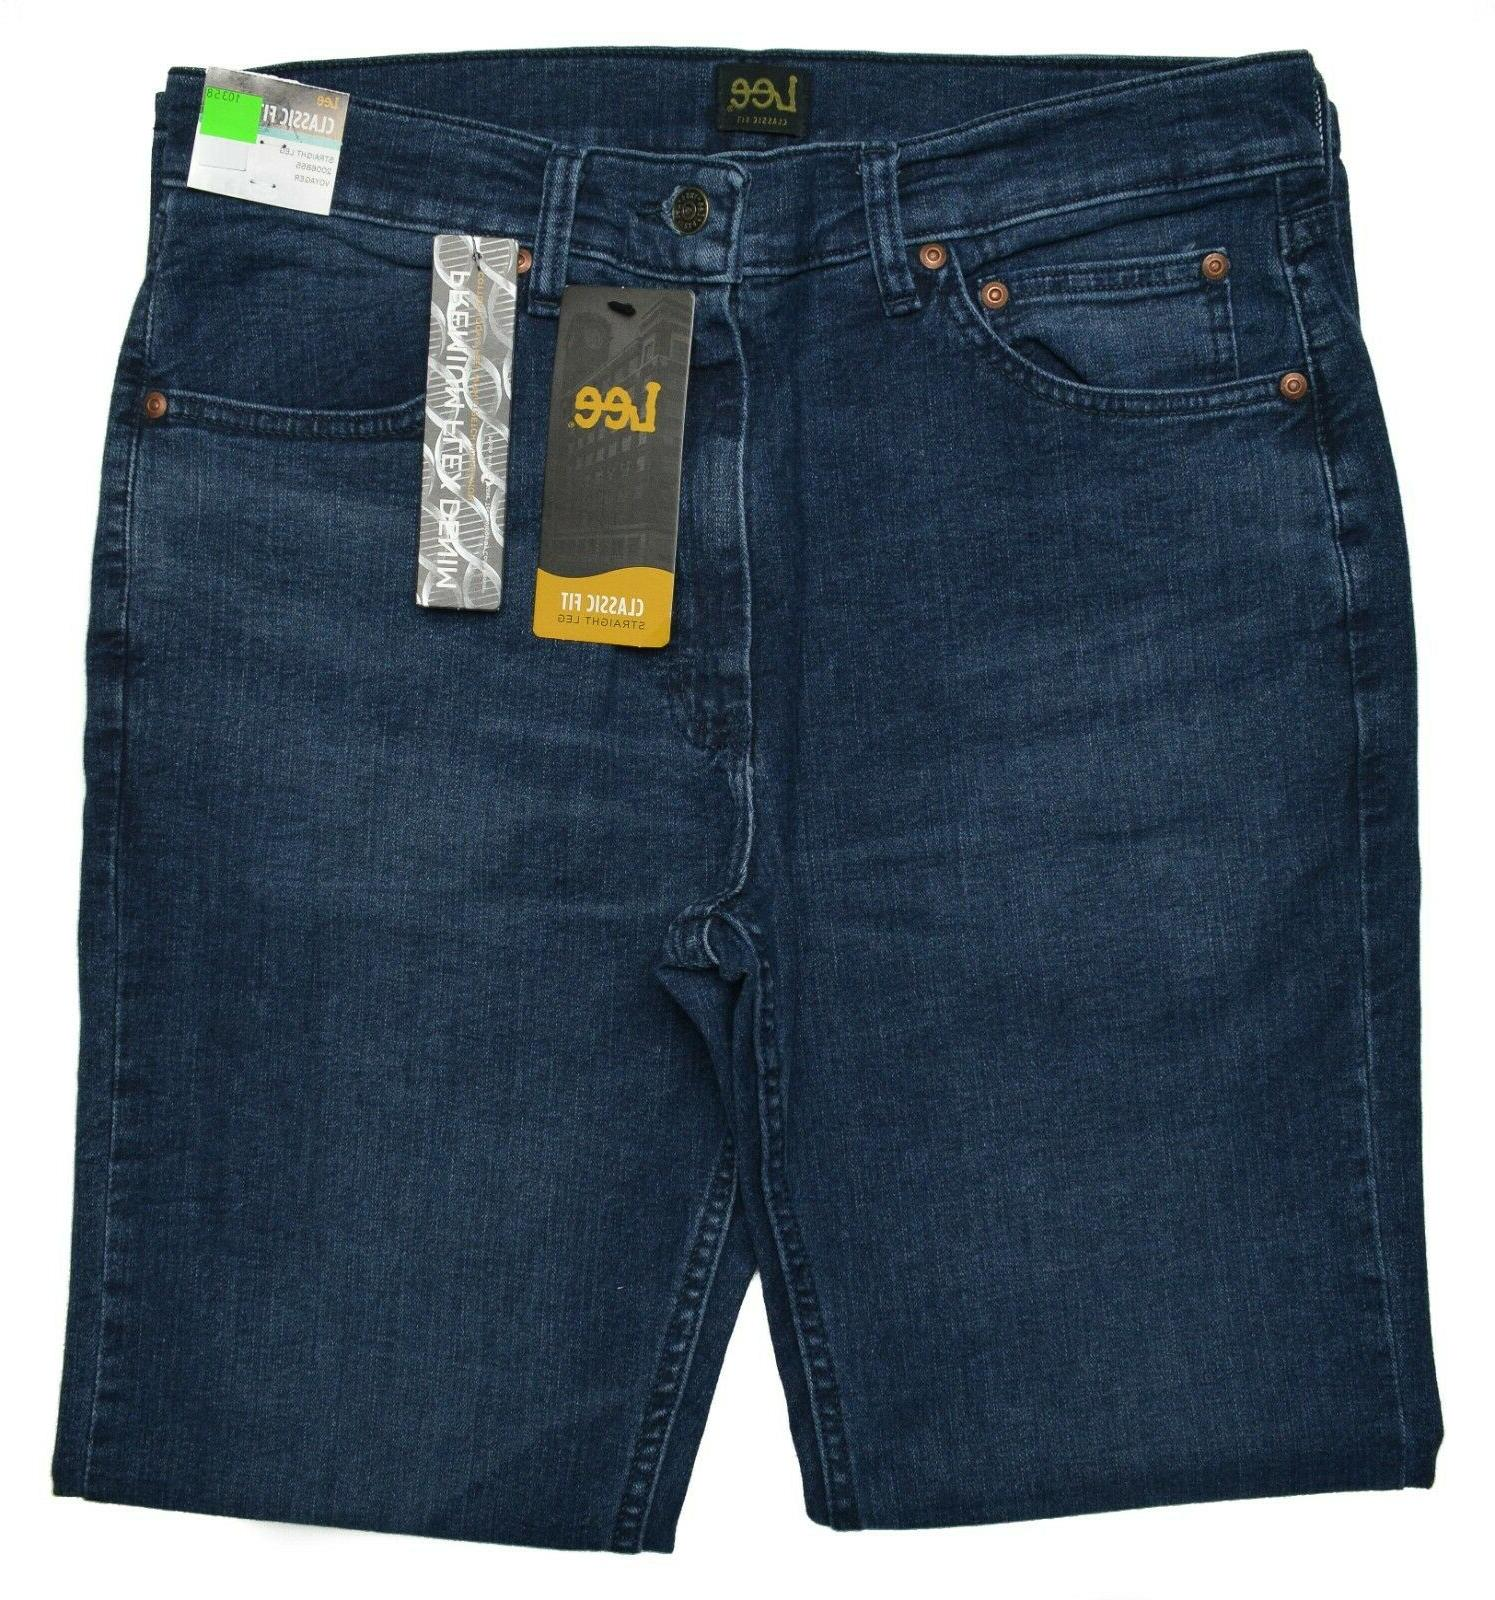 Lee NEW Men's Classic Straight Premium Flex Jeans